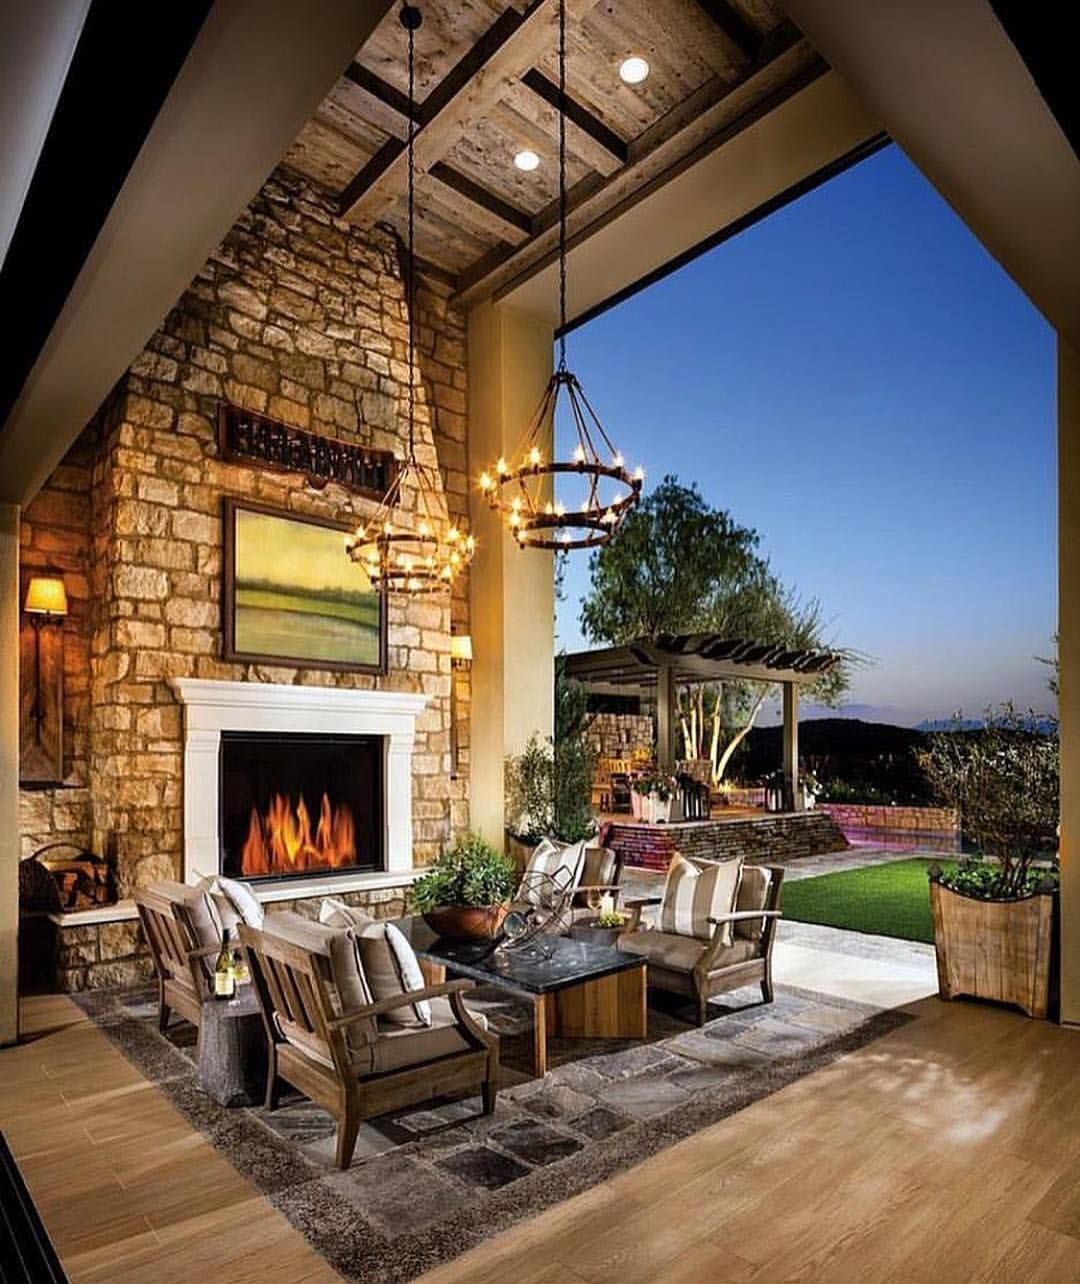 Beautiful home by @tollbrothers (With images) | Indoor ... on Beautiful Outdoor Living Spaces id=43419